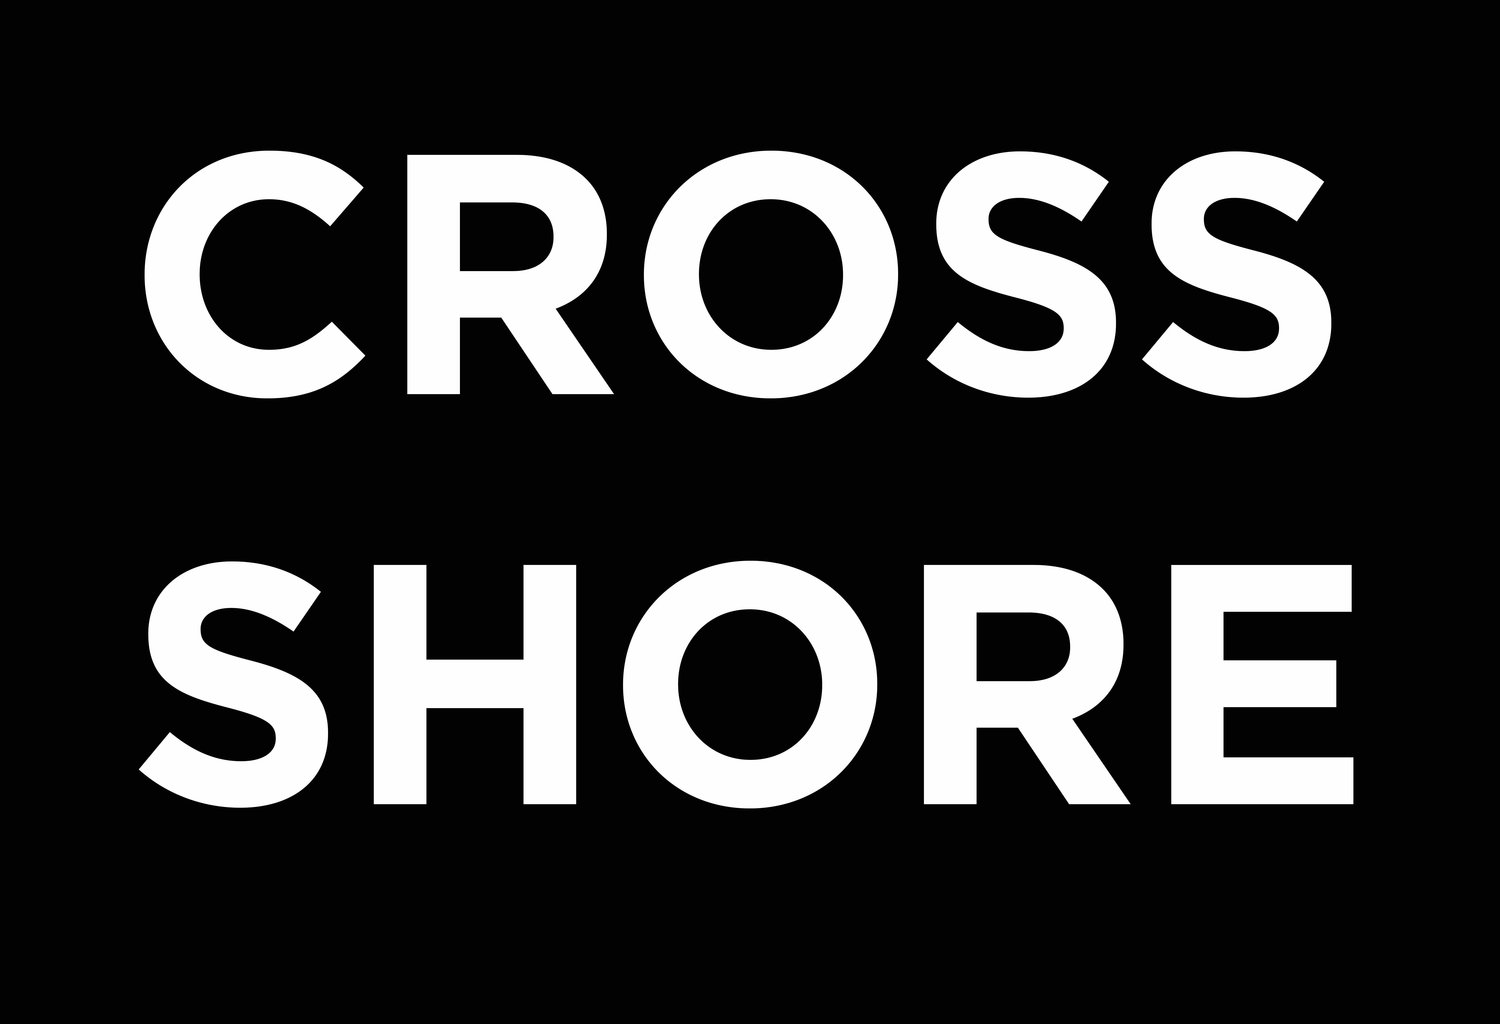 Cross Shore Design Ltd